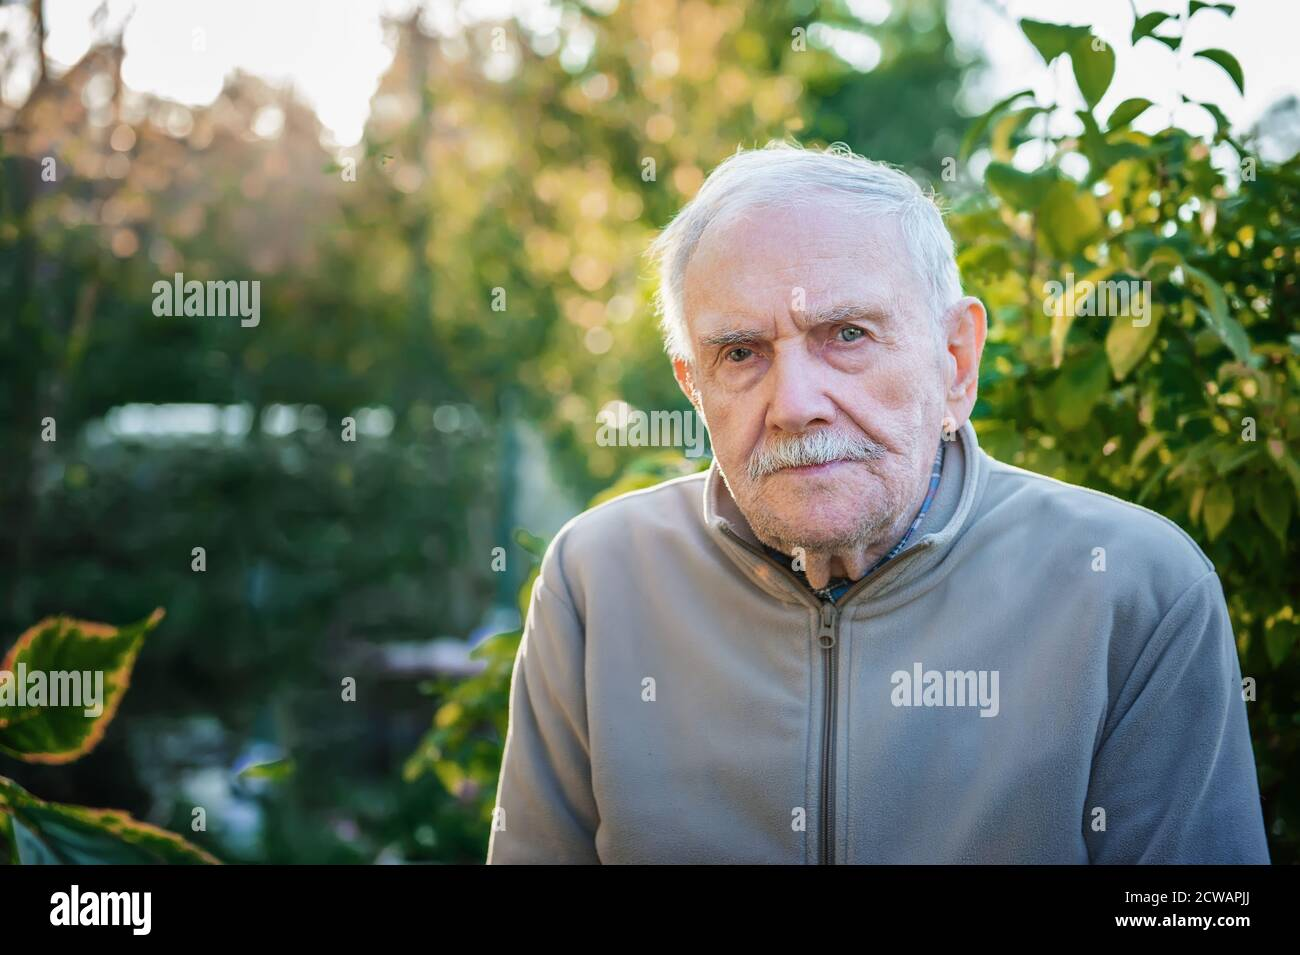 Artistic portrait of a friendly older old man on the street close-up. Copy space Stock Photo